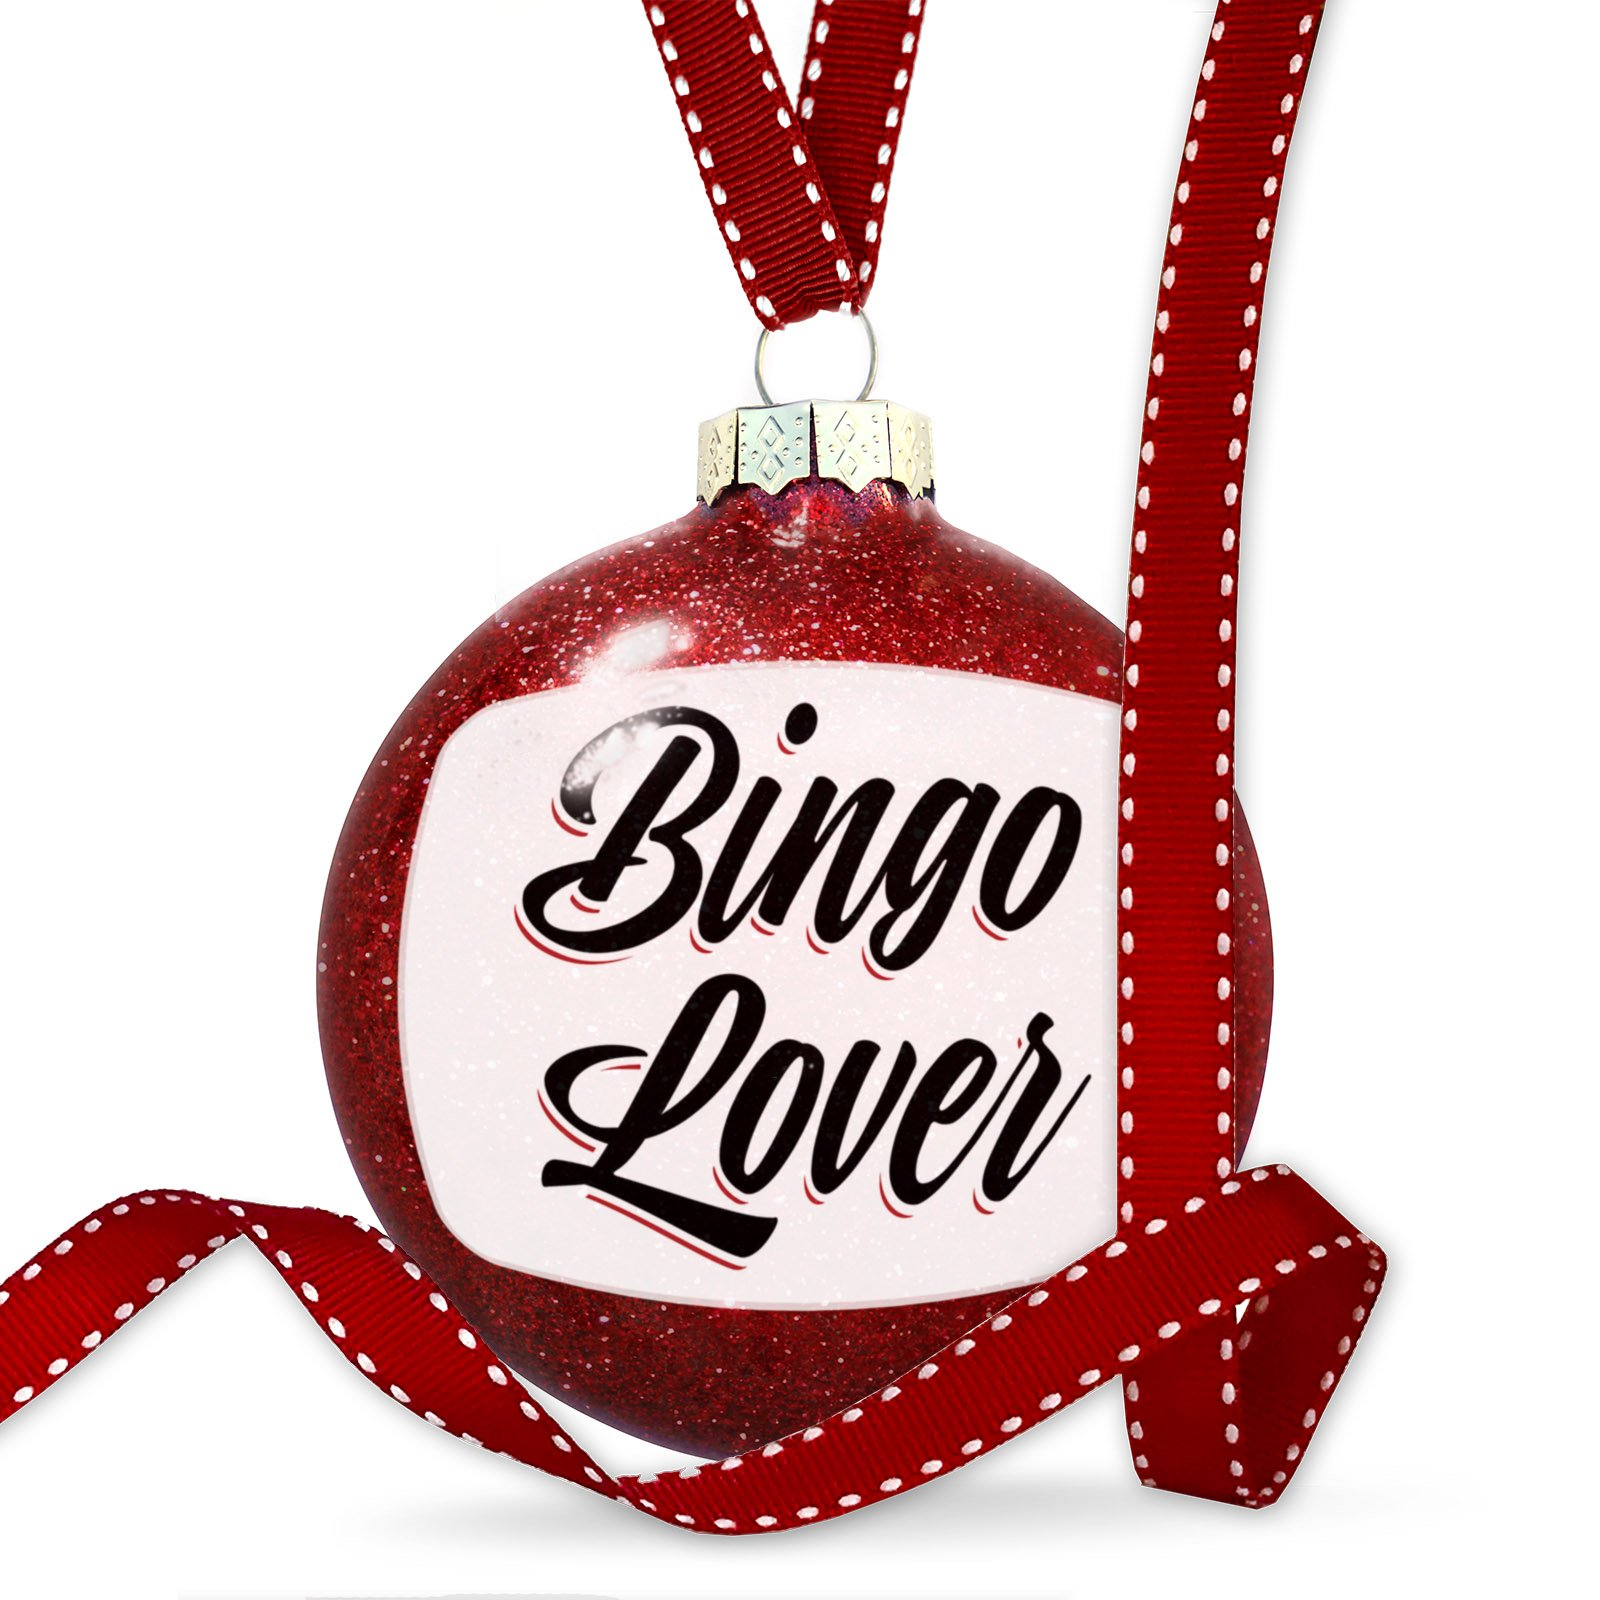 Christmas Decoration Vintage Lettering Bingo Lover Ornament by NEONBLOND